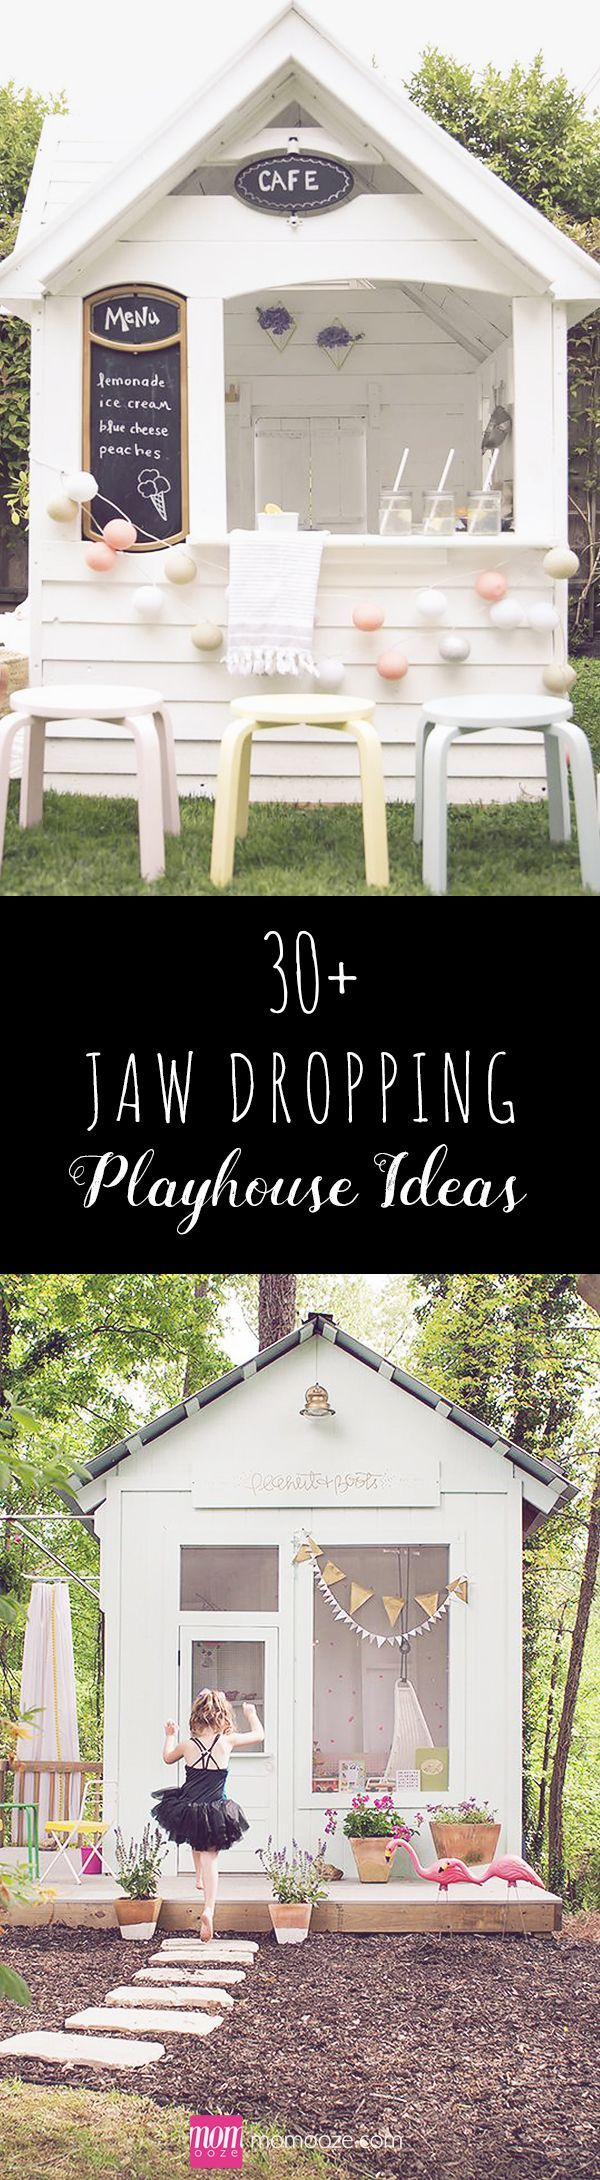 30+ Jaw Dropping Playhouse Ideas that you Would Want to Live in: